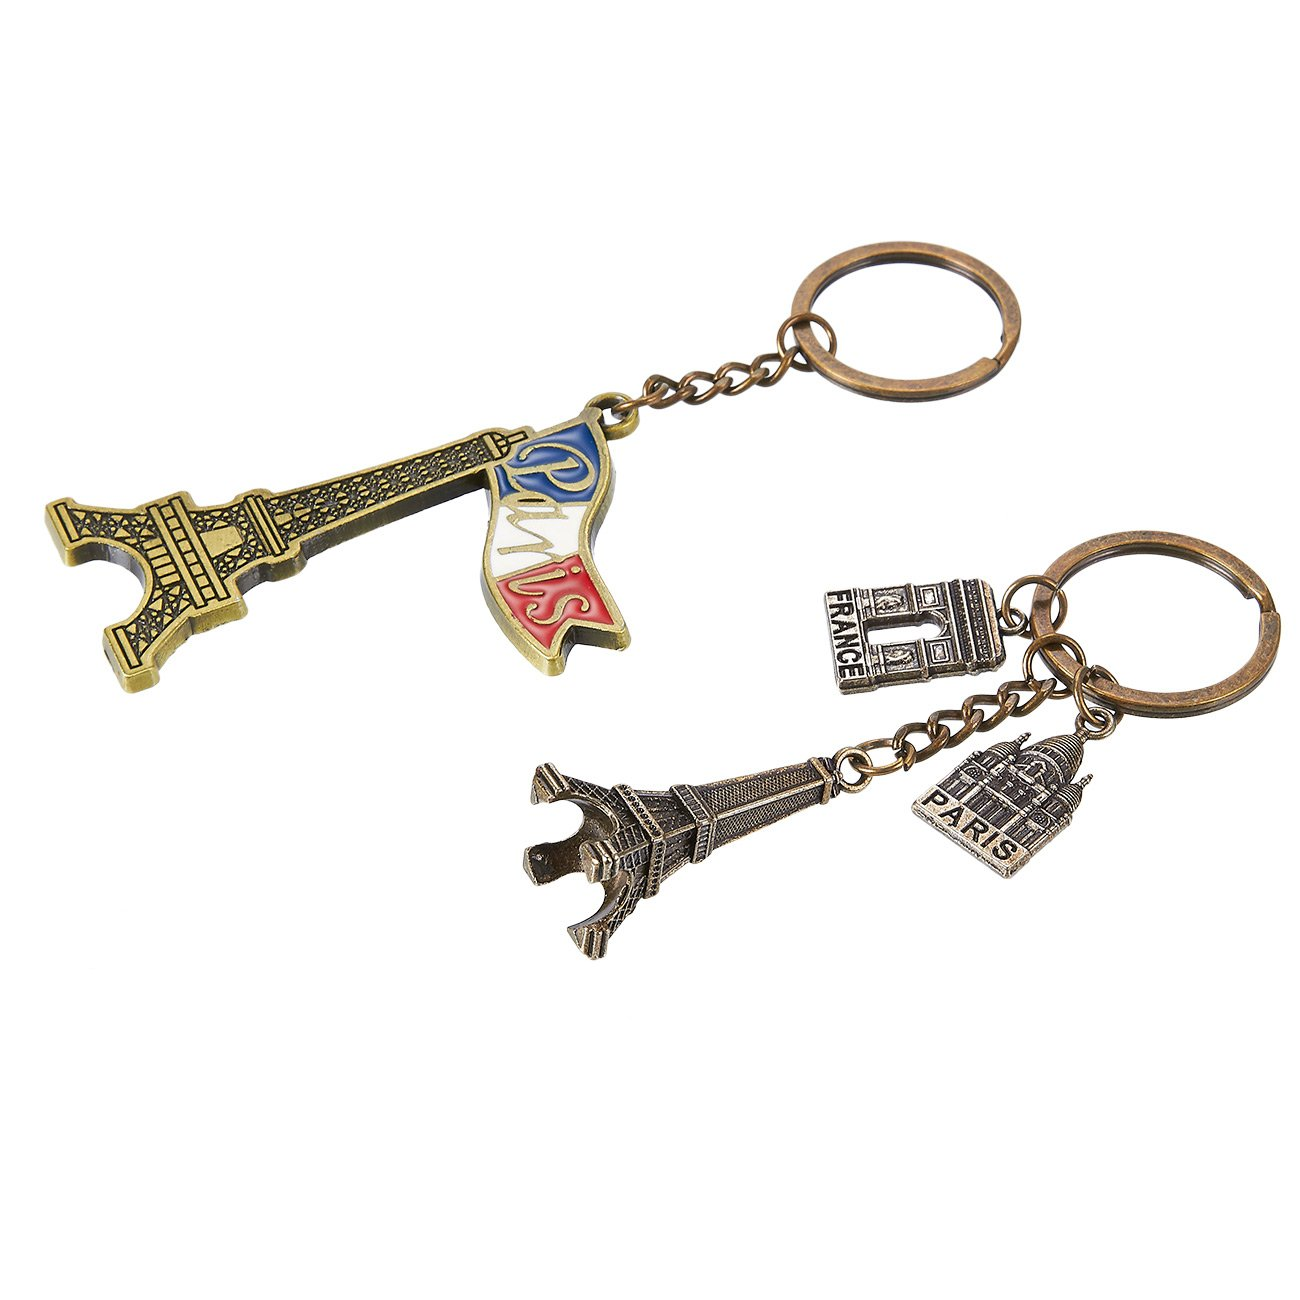 Juvale Paris Keychain - 6-Pack Souvenir Key Rings, 6 Assorted Designs Include Eiffel Tower, French Flag, and Arc de Triomphe